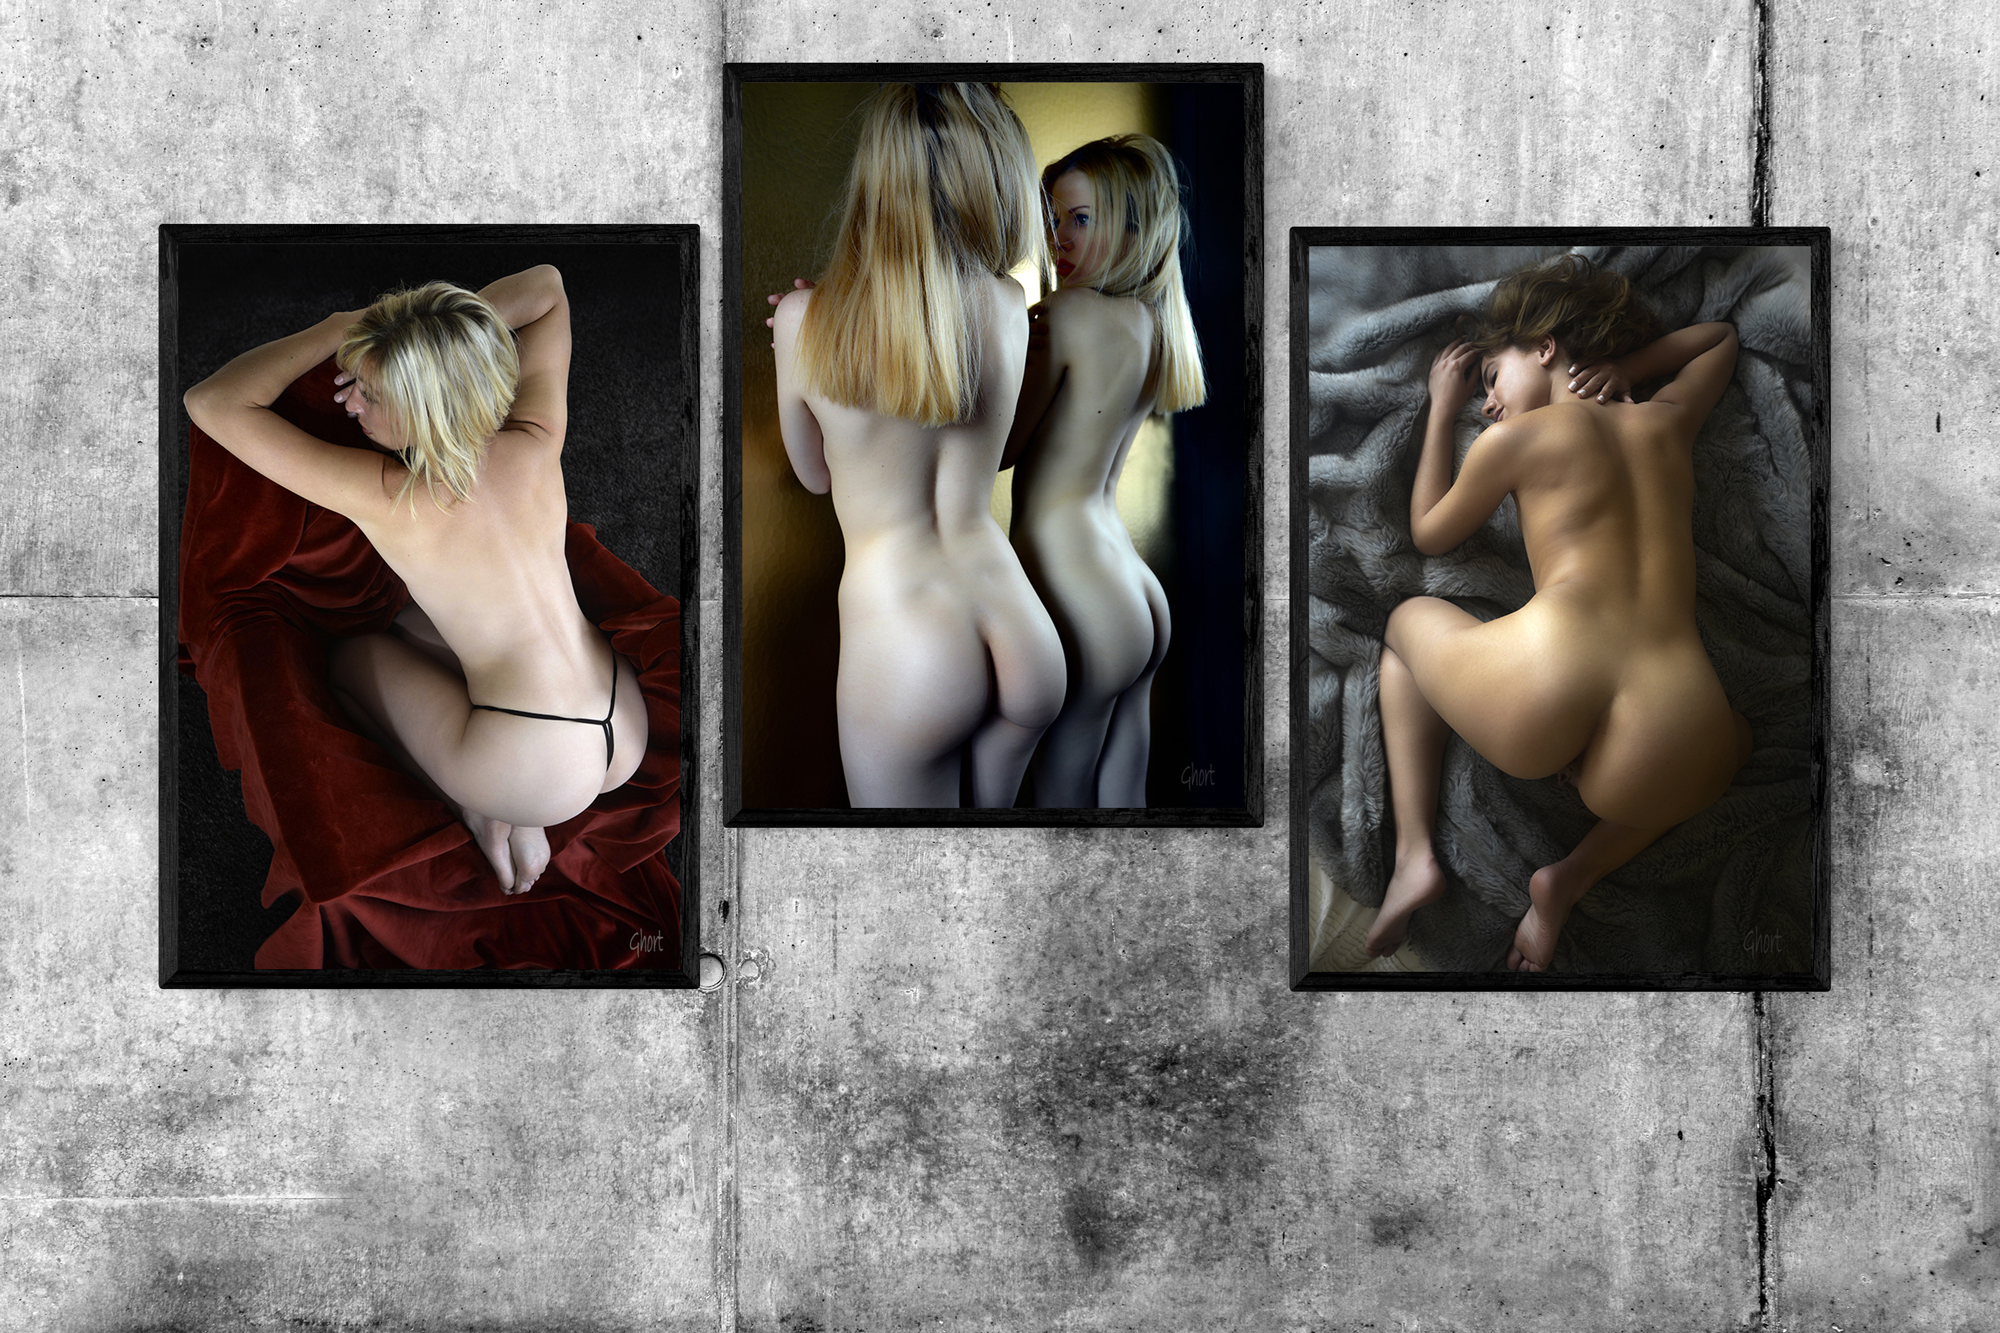 Lot de 3 photographies sexy à collectionner